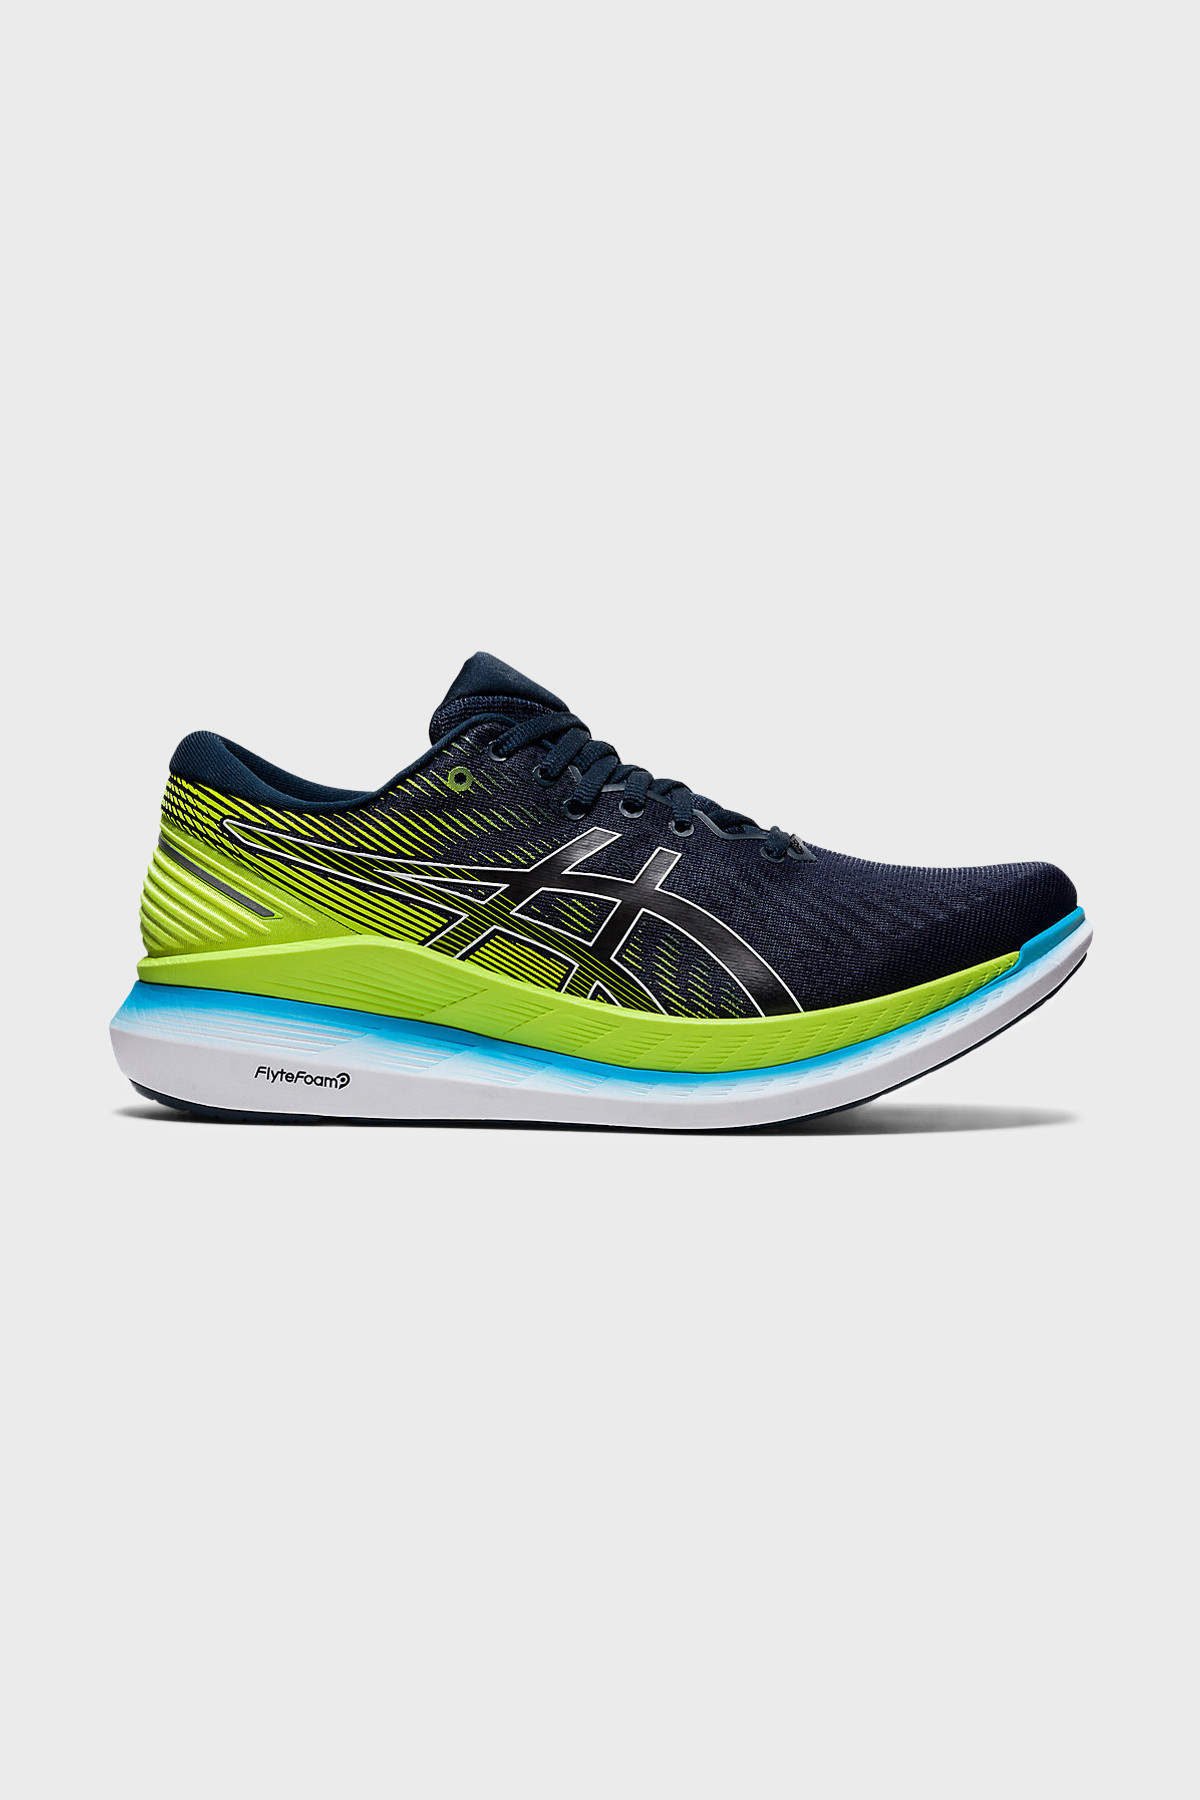 ASICS - GLIDERIDE 2 - FRENCH BLUE HAZARD GREEN